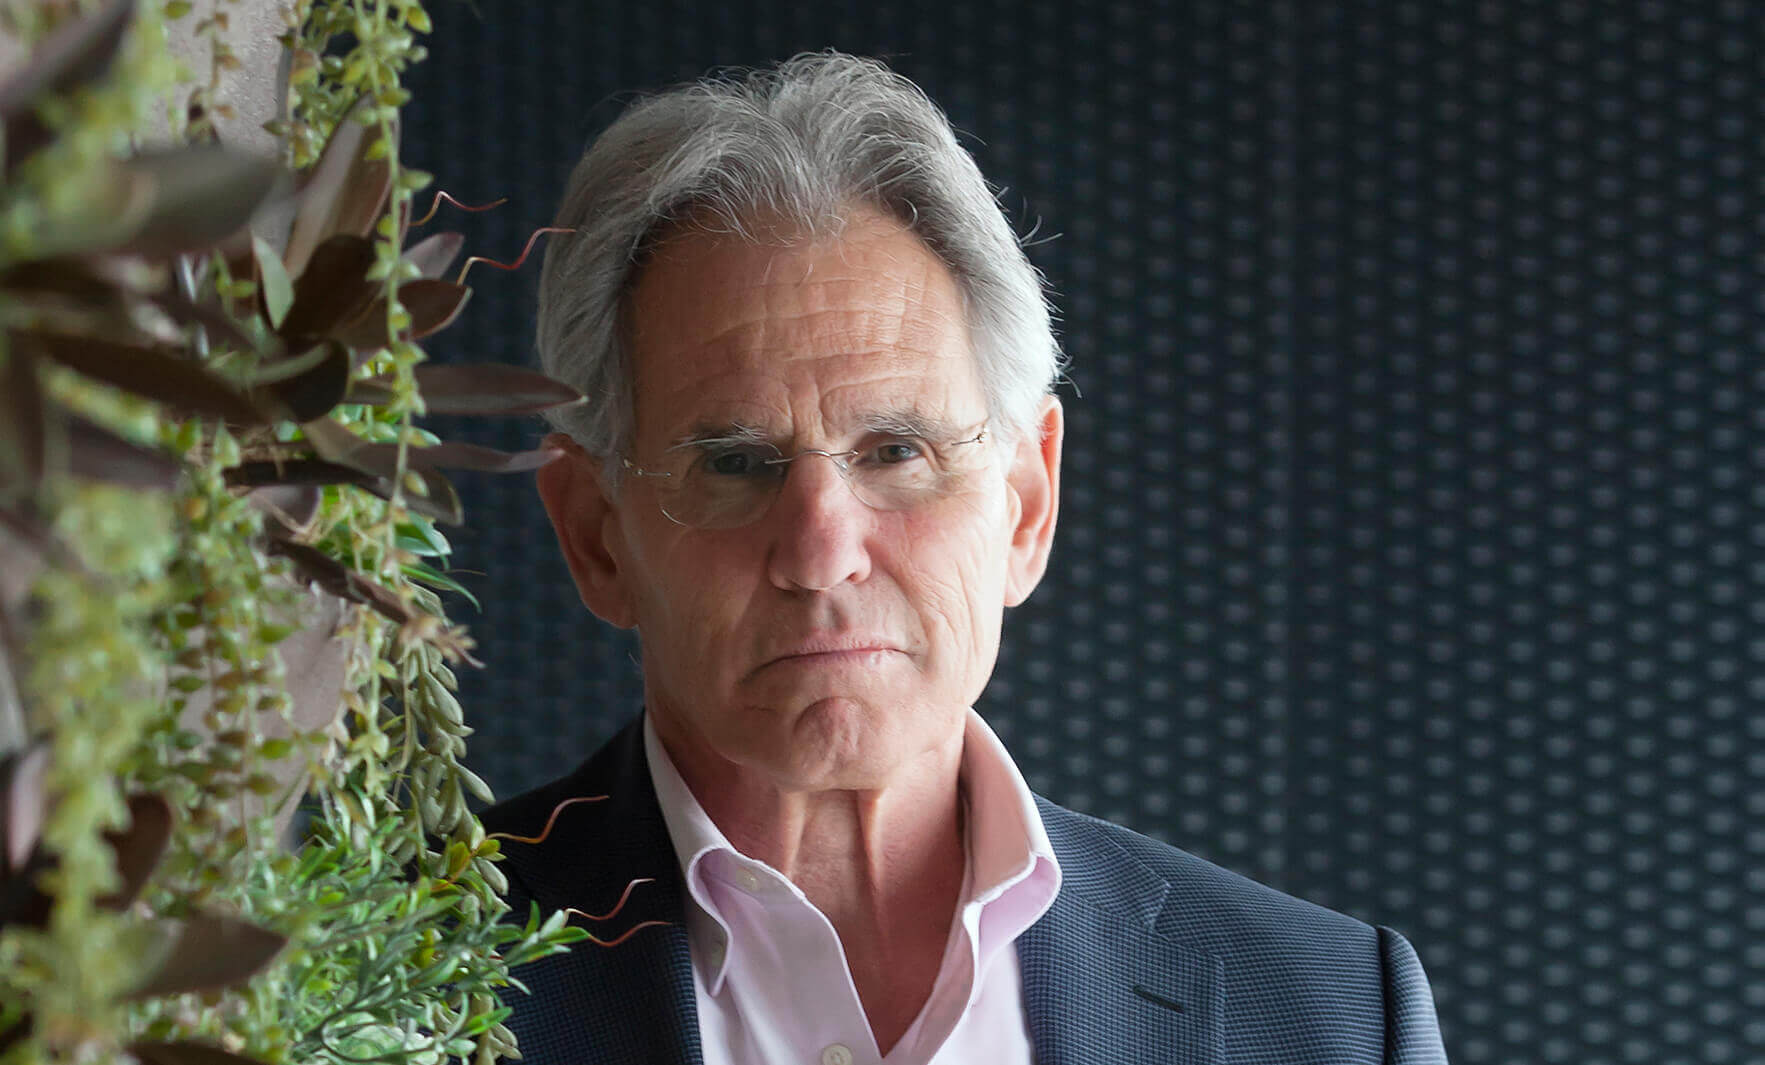 Photo of JON KABAT-ZINN